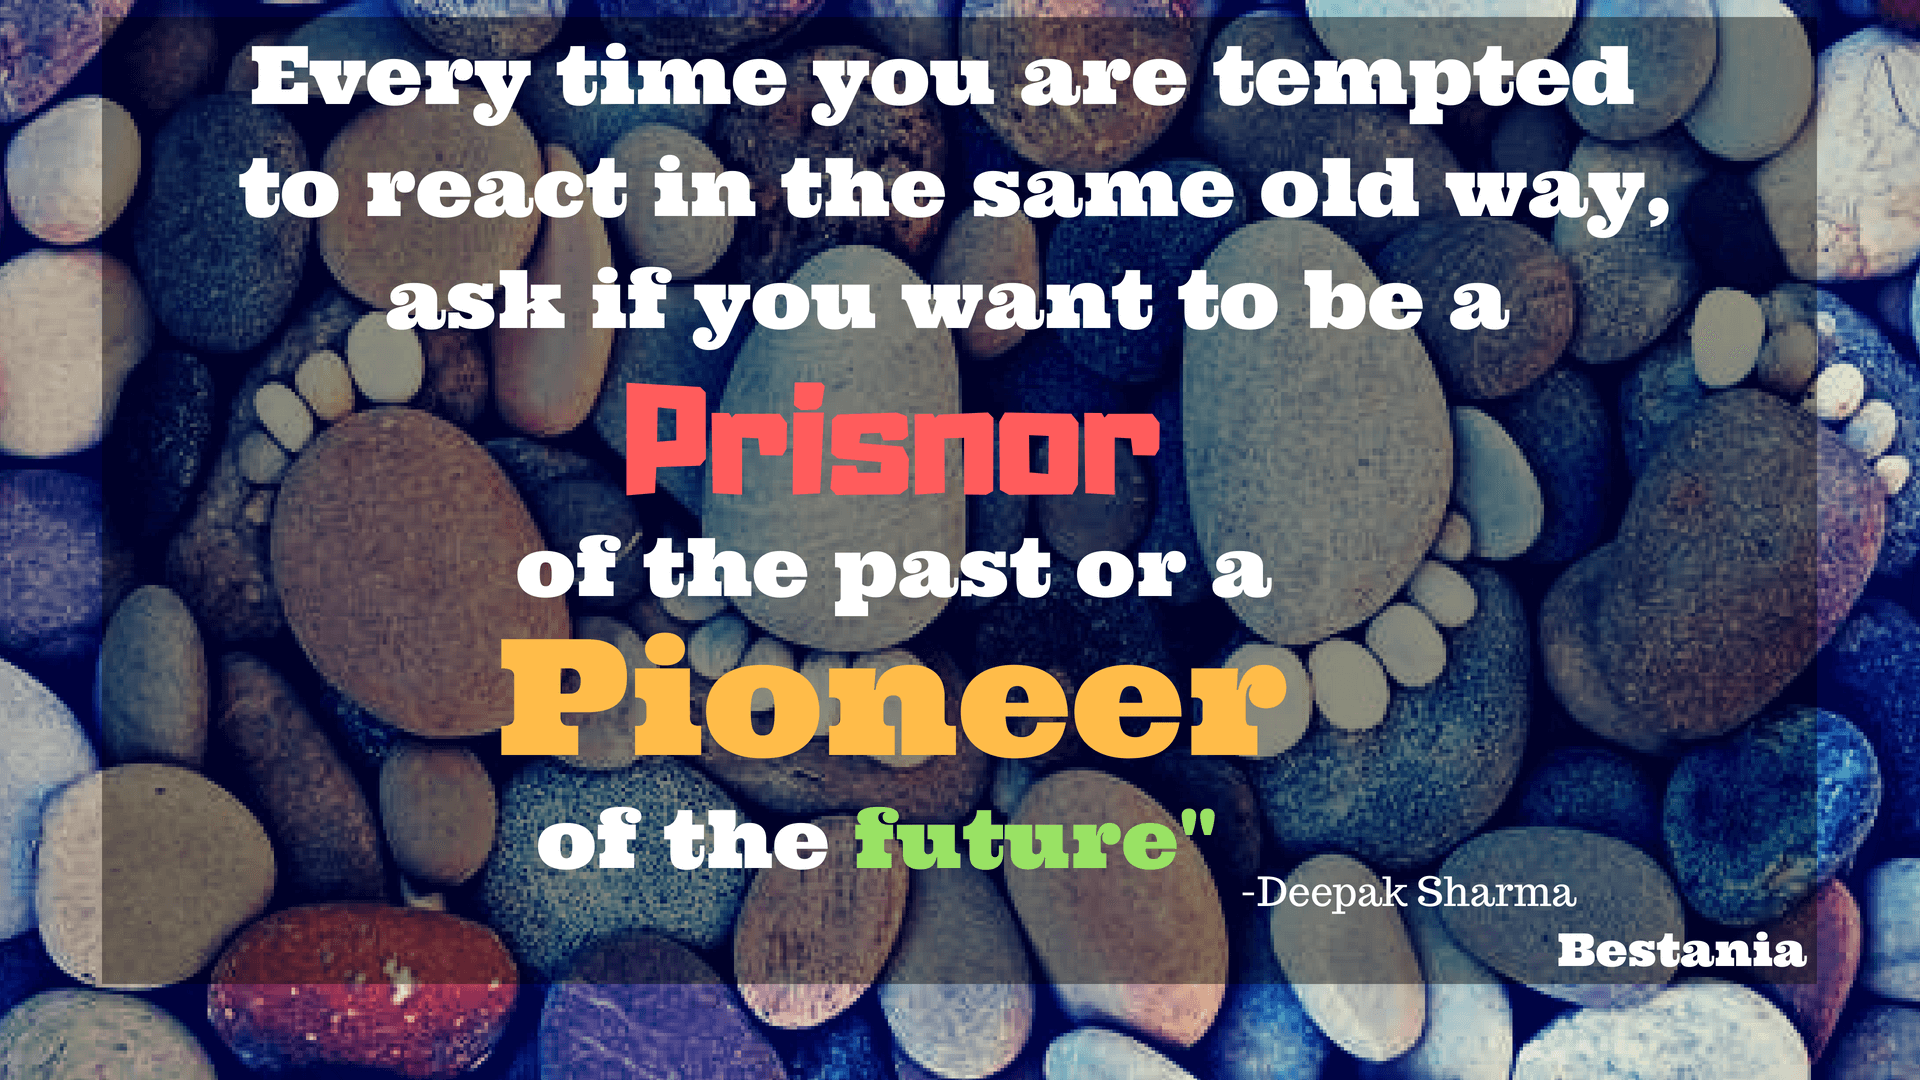 EVERY TIME YOU TEMPTED TO REACT IN THE SAME OLD WAY, ASK IF YOU WANT TO BE A PRISNOR OF THE PAST OR A PIONEER IF THE FUTURE.– DEEPAK CHOPRA